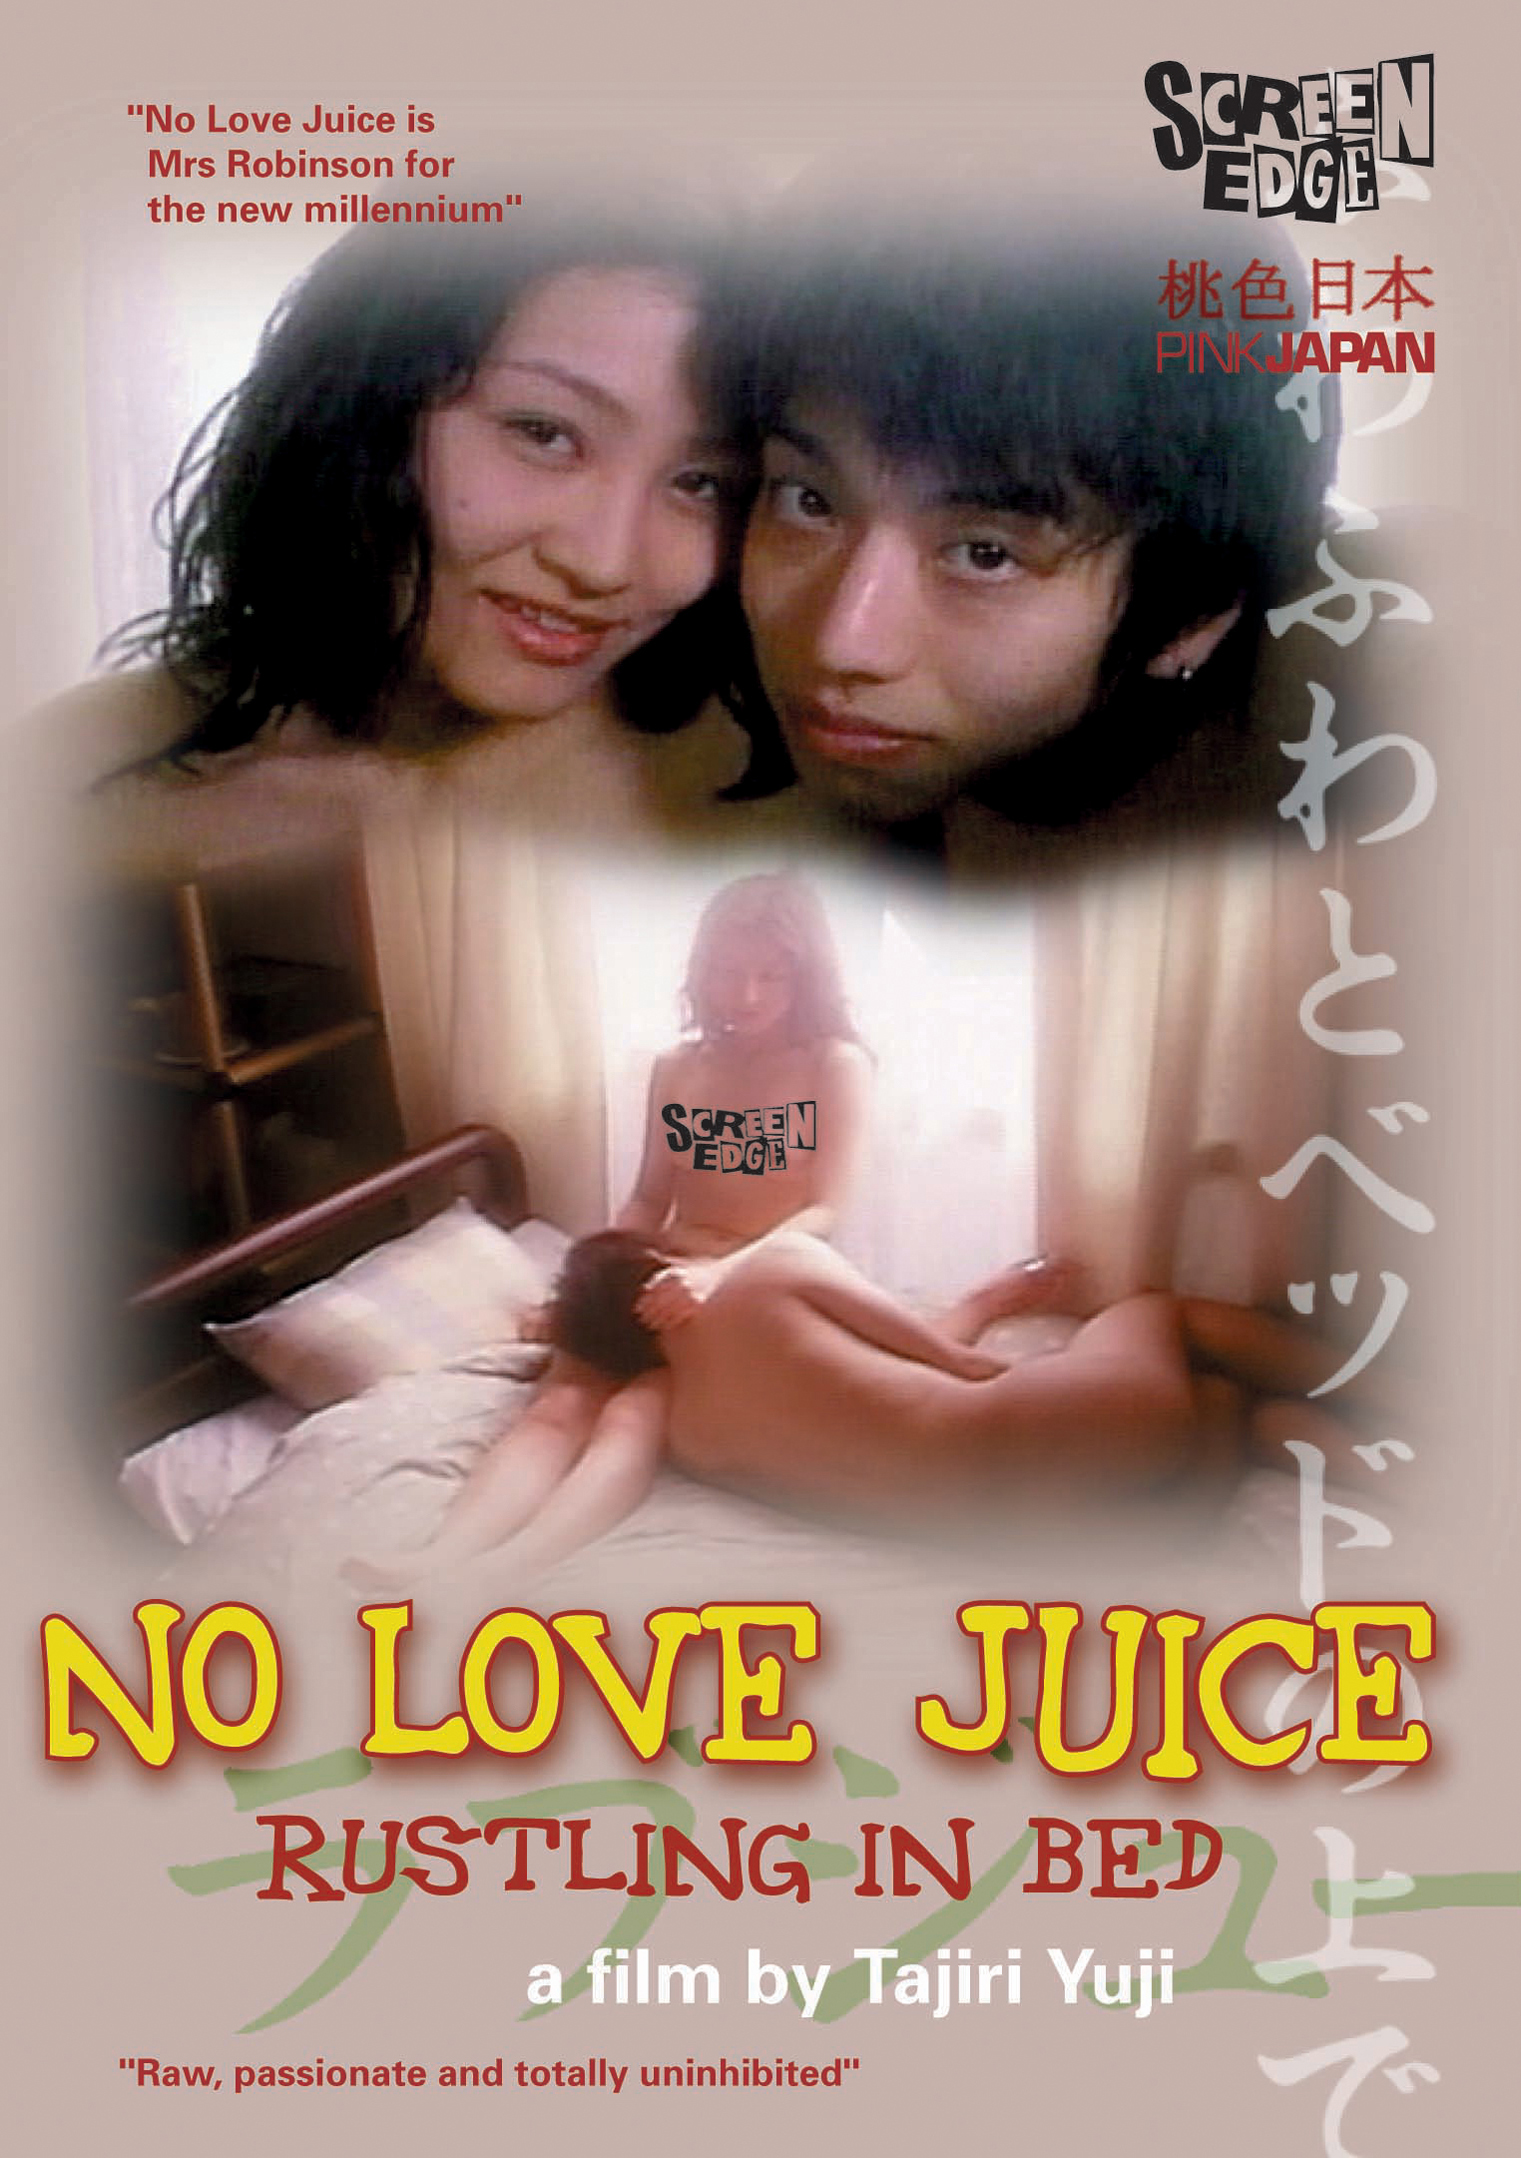 No Love Juice: Rustling in Bed DOWNLOAD TO OWN